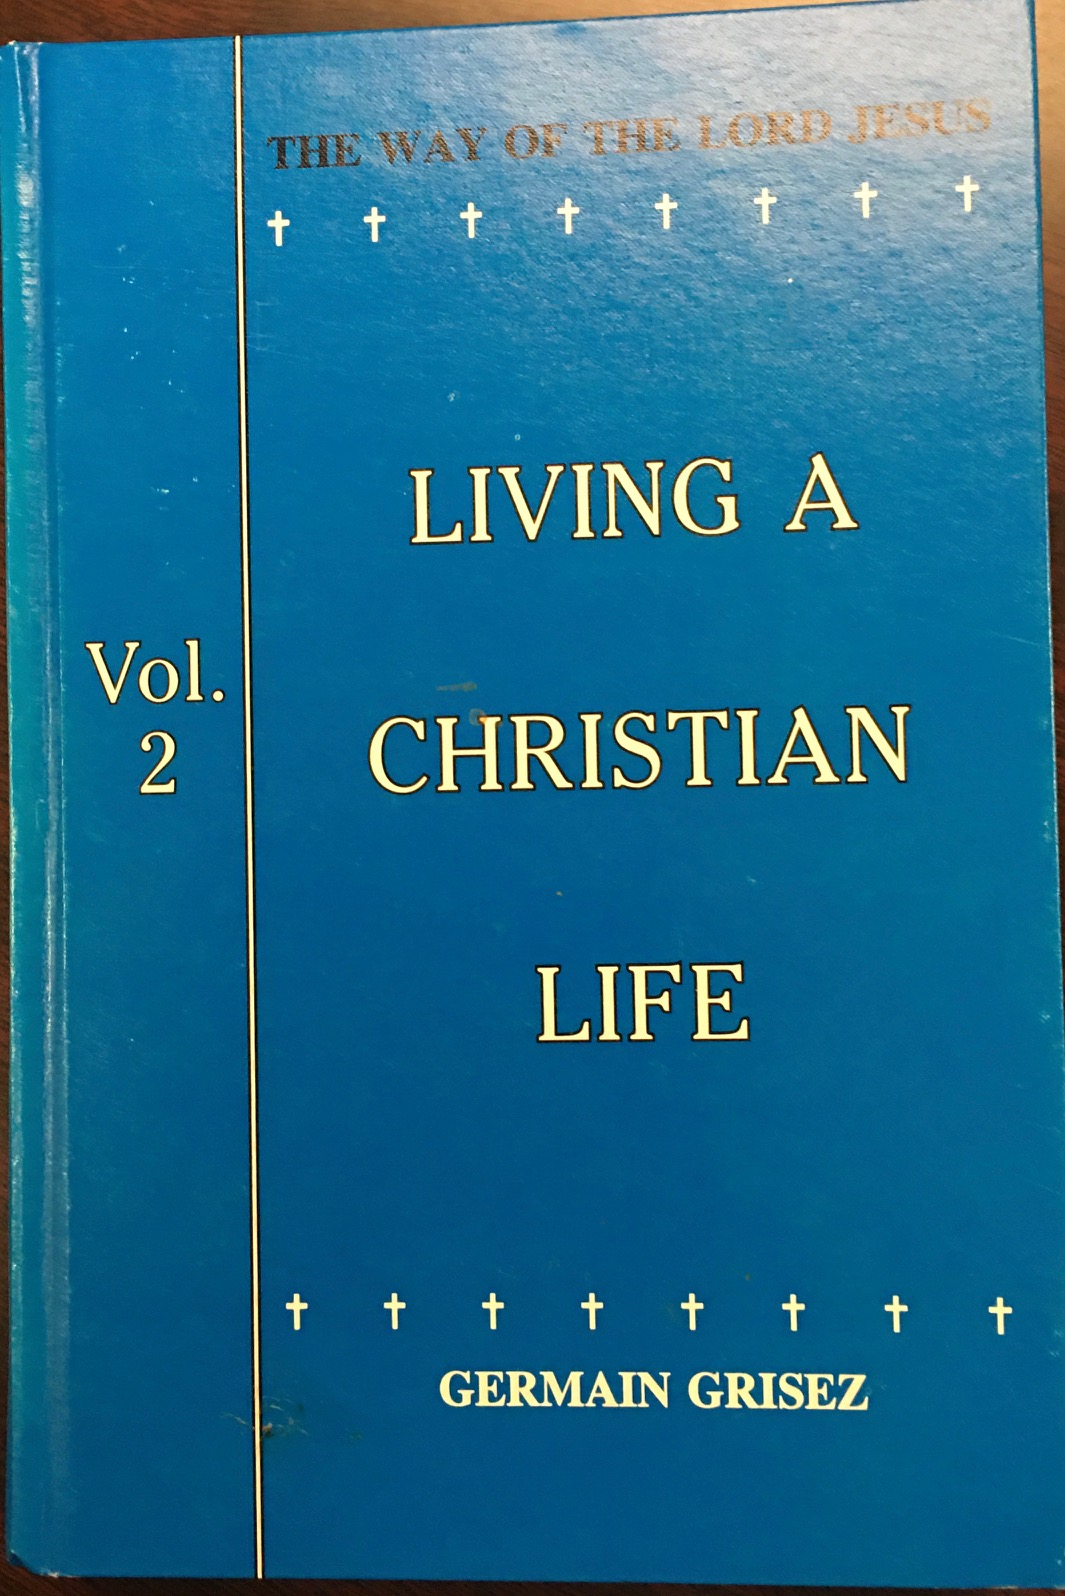 Image for The Way of the Lord Jesus, Volume 2: Living a Christian Life